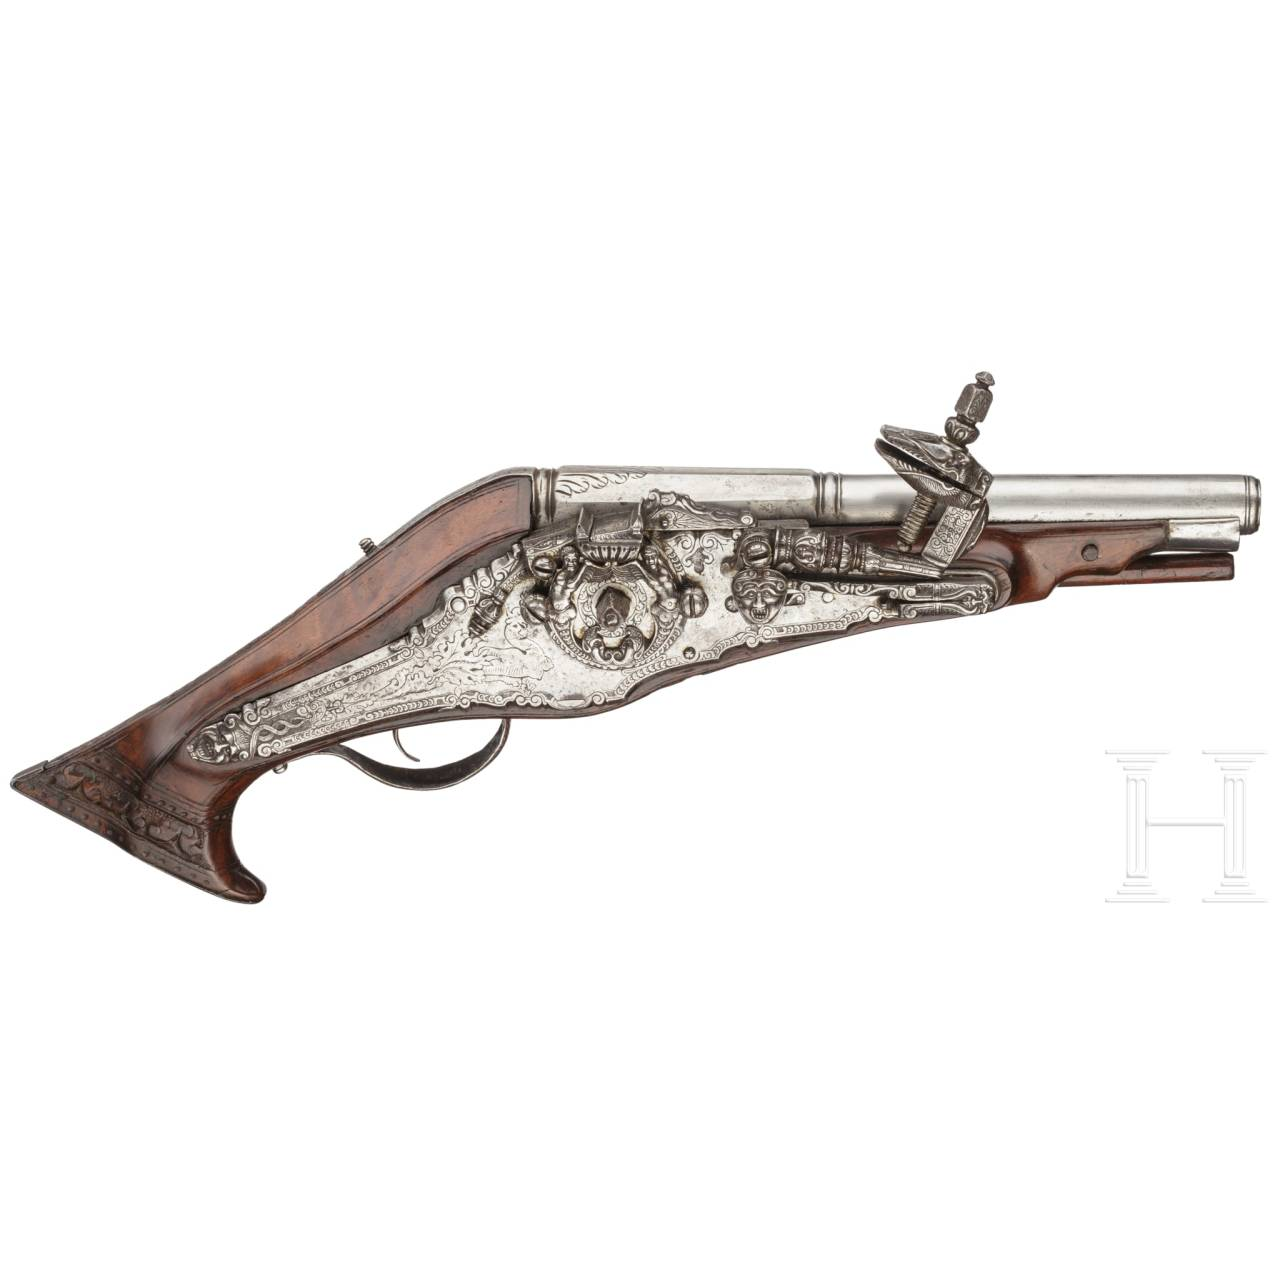 A rare North French wheellock pistol with an elaborately chased lock, circa 1570